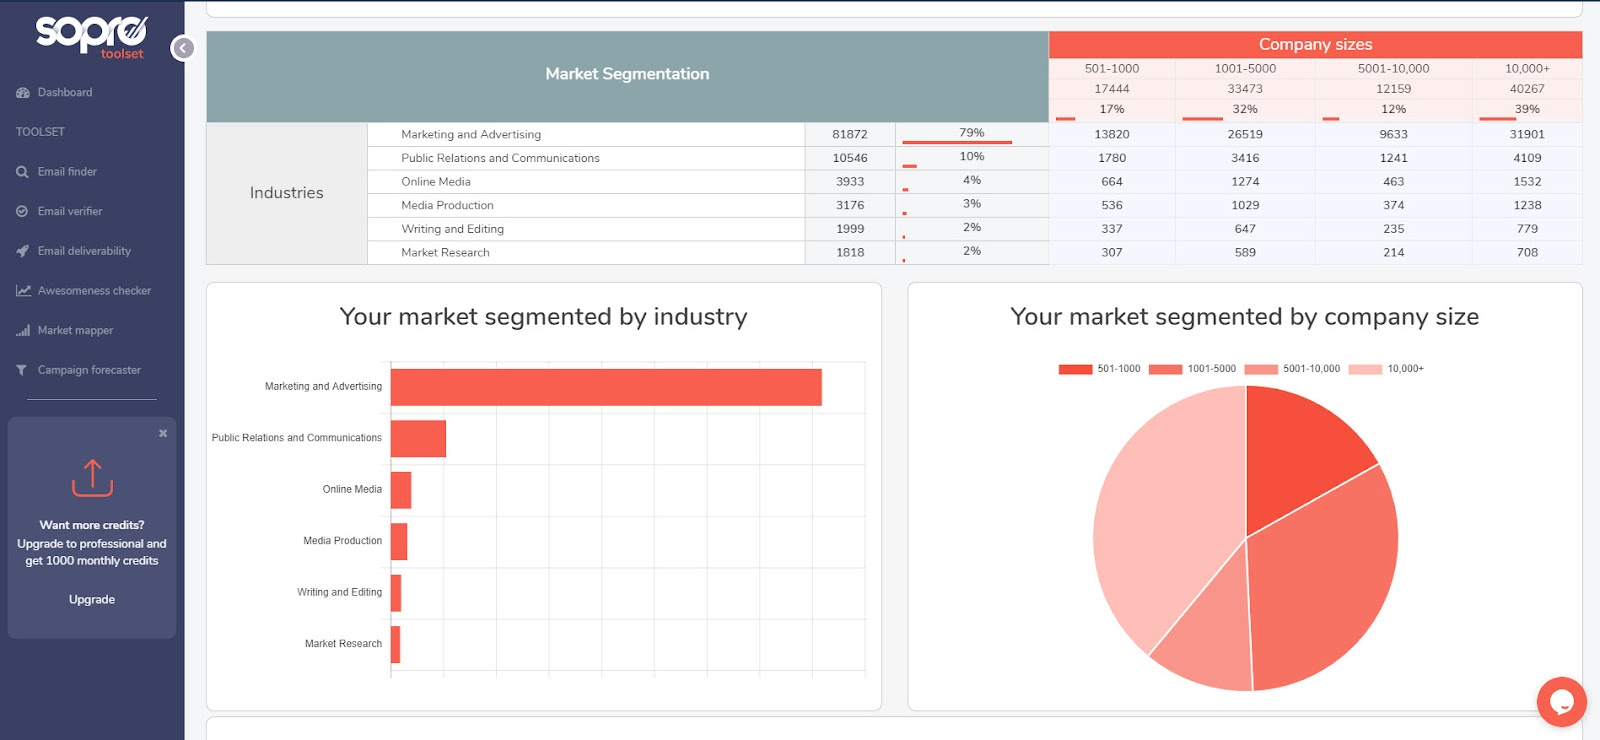 An example of a B2B market segmentation report, taken from the Sopro market map tool.